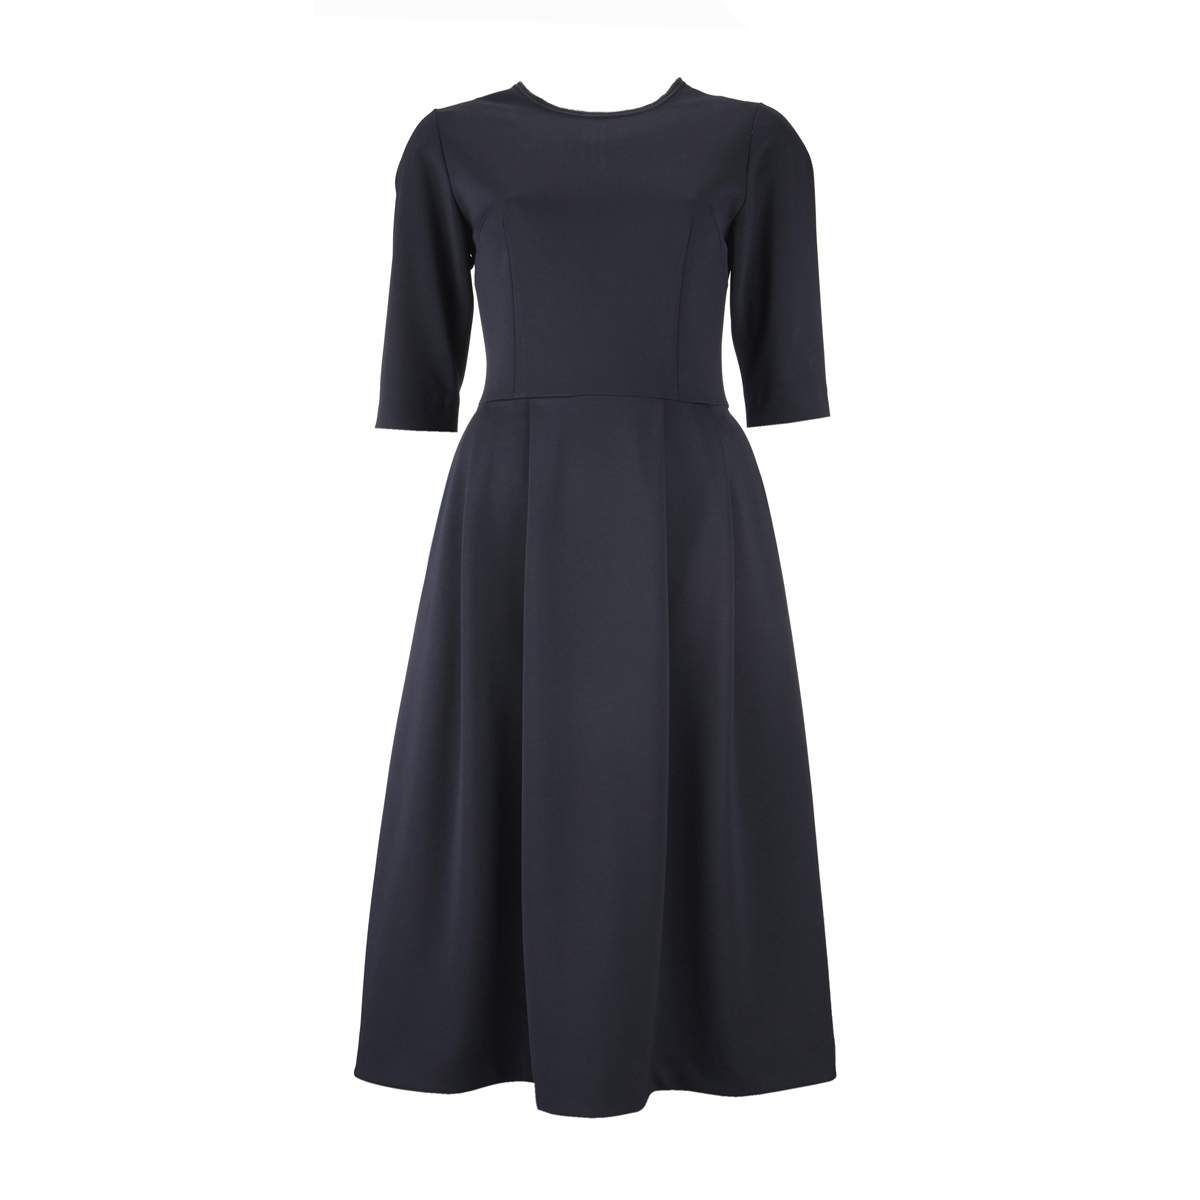 0fb4d77b8b0 Lennon Courtney Bell Dress Navy | Fashion Inspiration | Belle dress ...